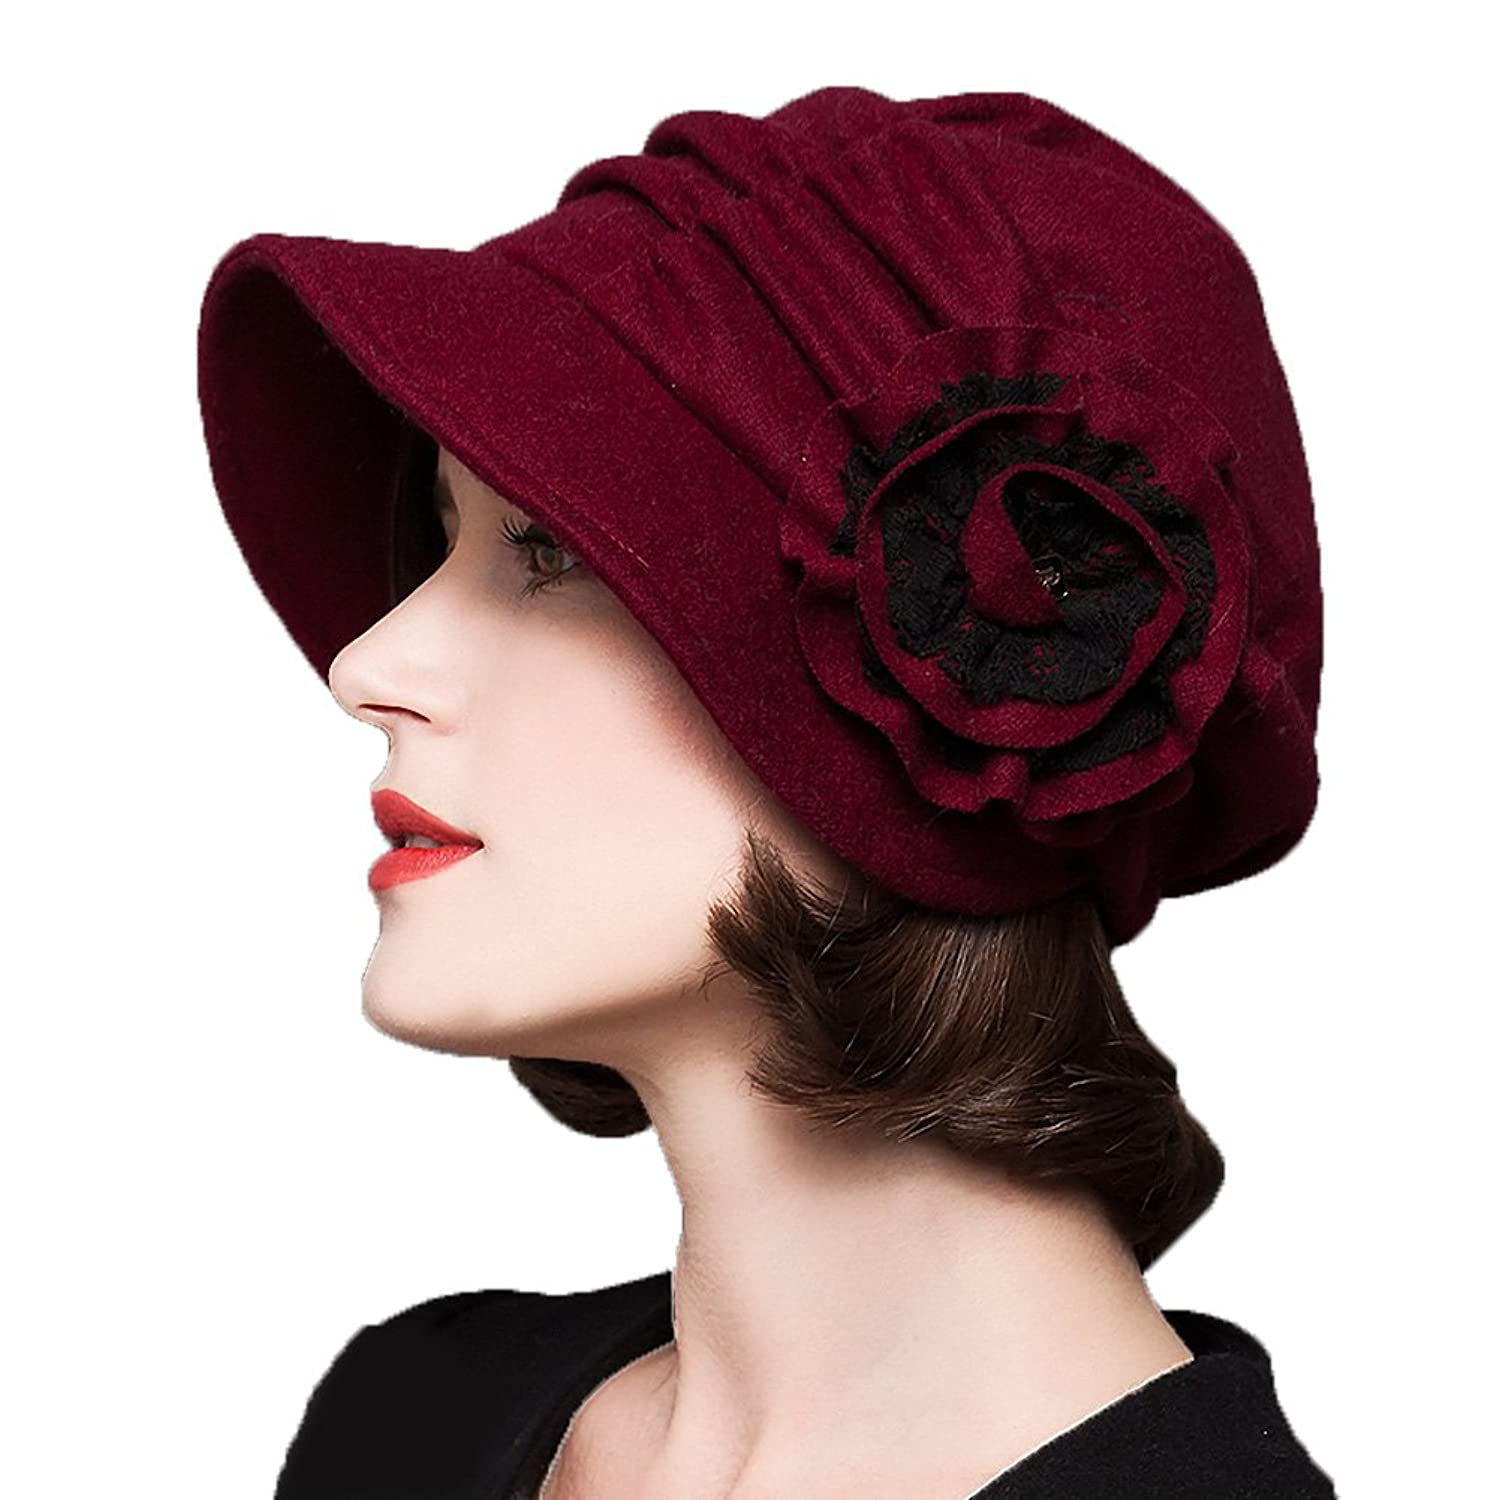 1900s, 1910s, WW1, Titanic Costumes  Decorative Flowers Wool Beret $28.40 AT vintagedancer.com